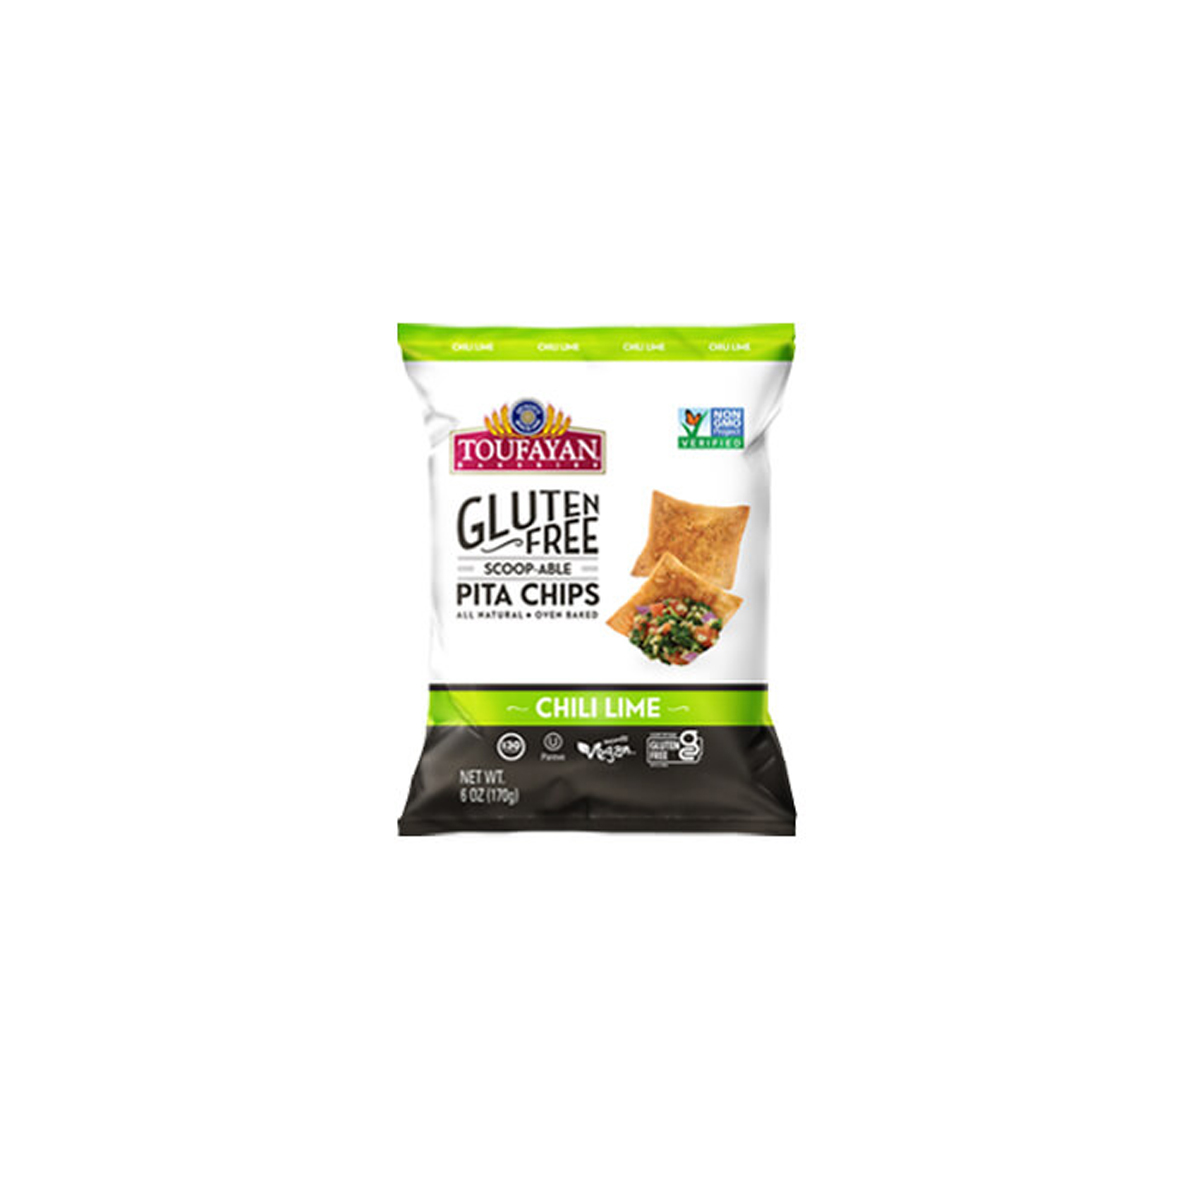 Pita Chips Chile & Lime Gluten Free